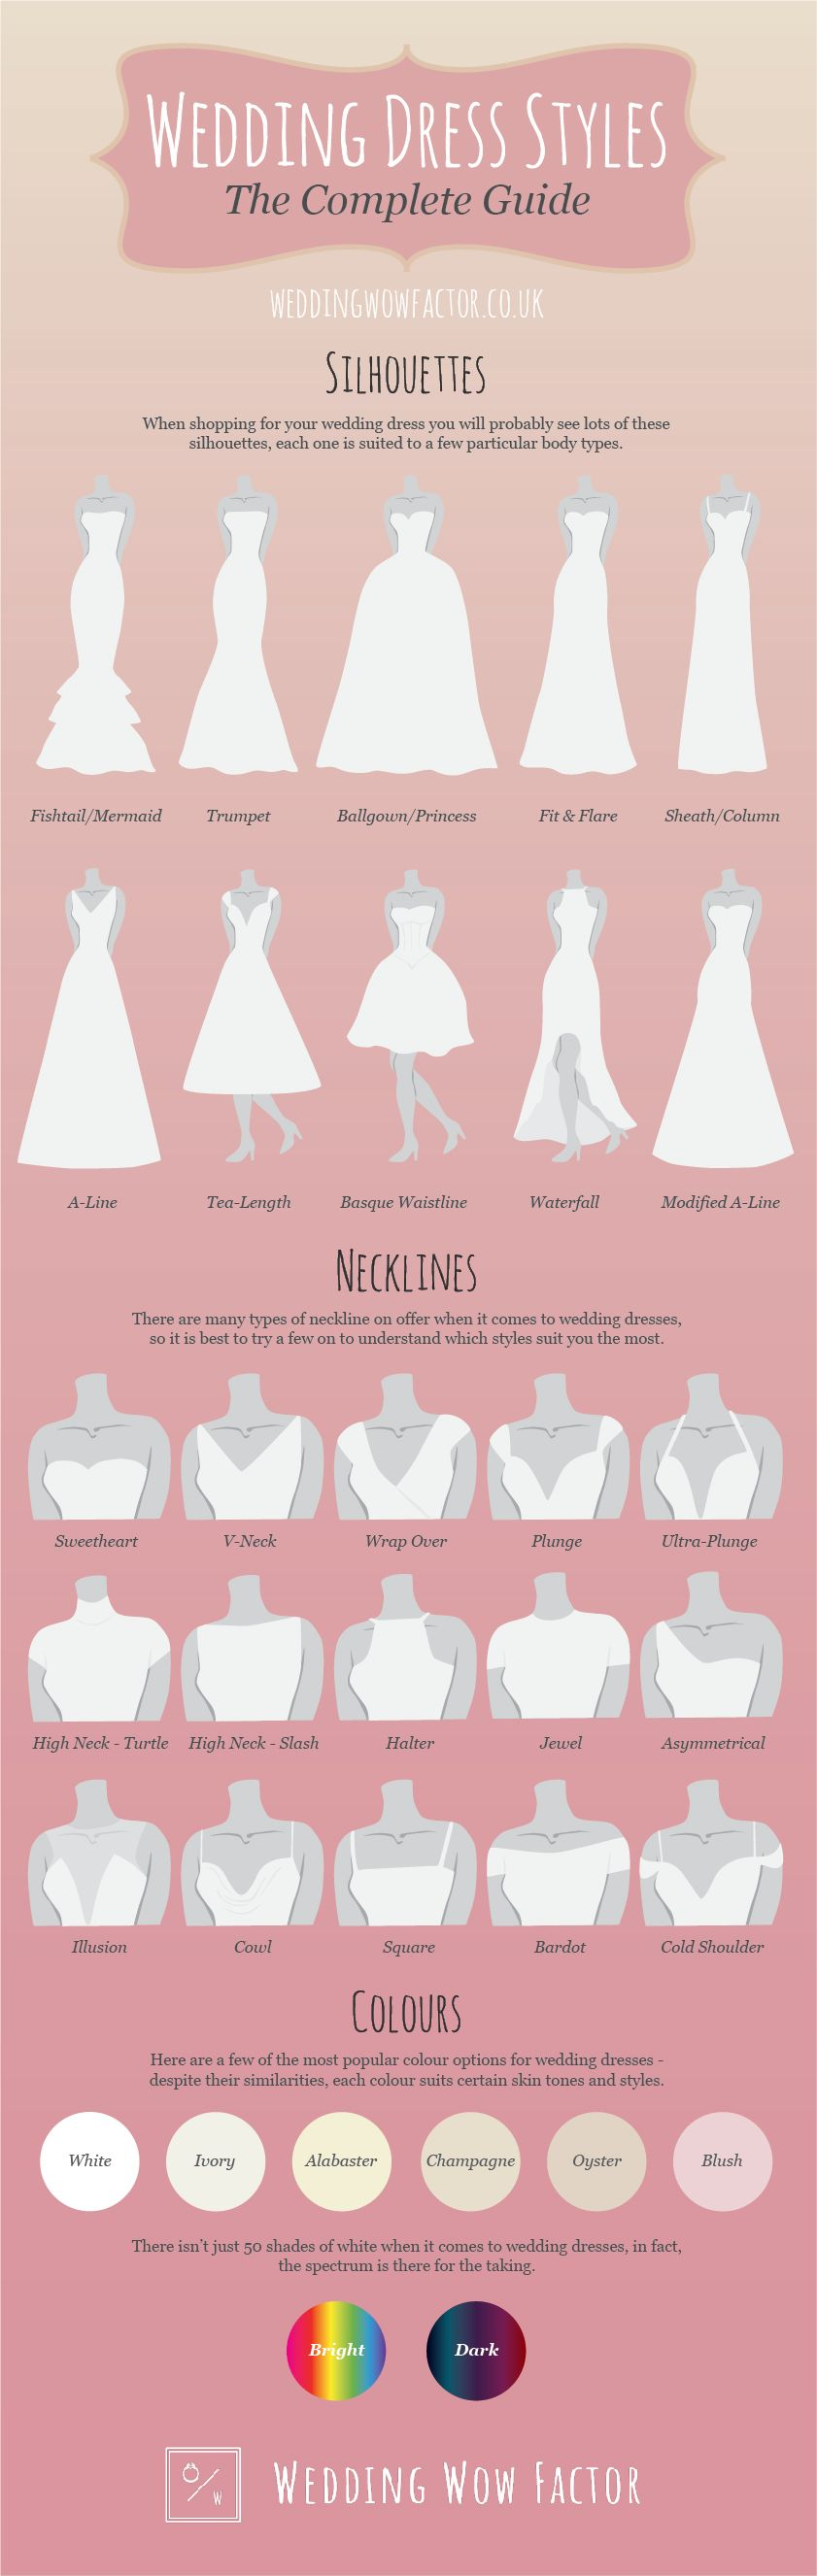 Wedding dress styles: silhouettes and necklines infographic